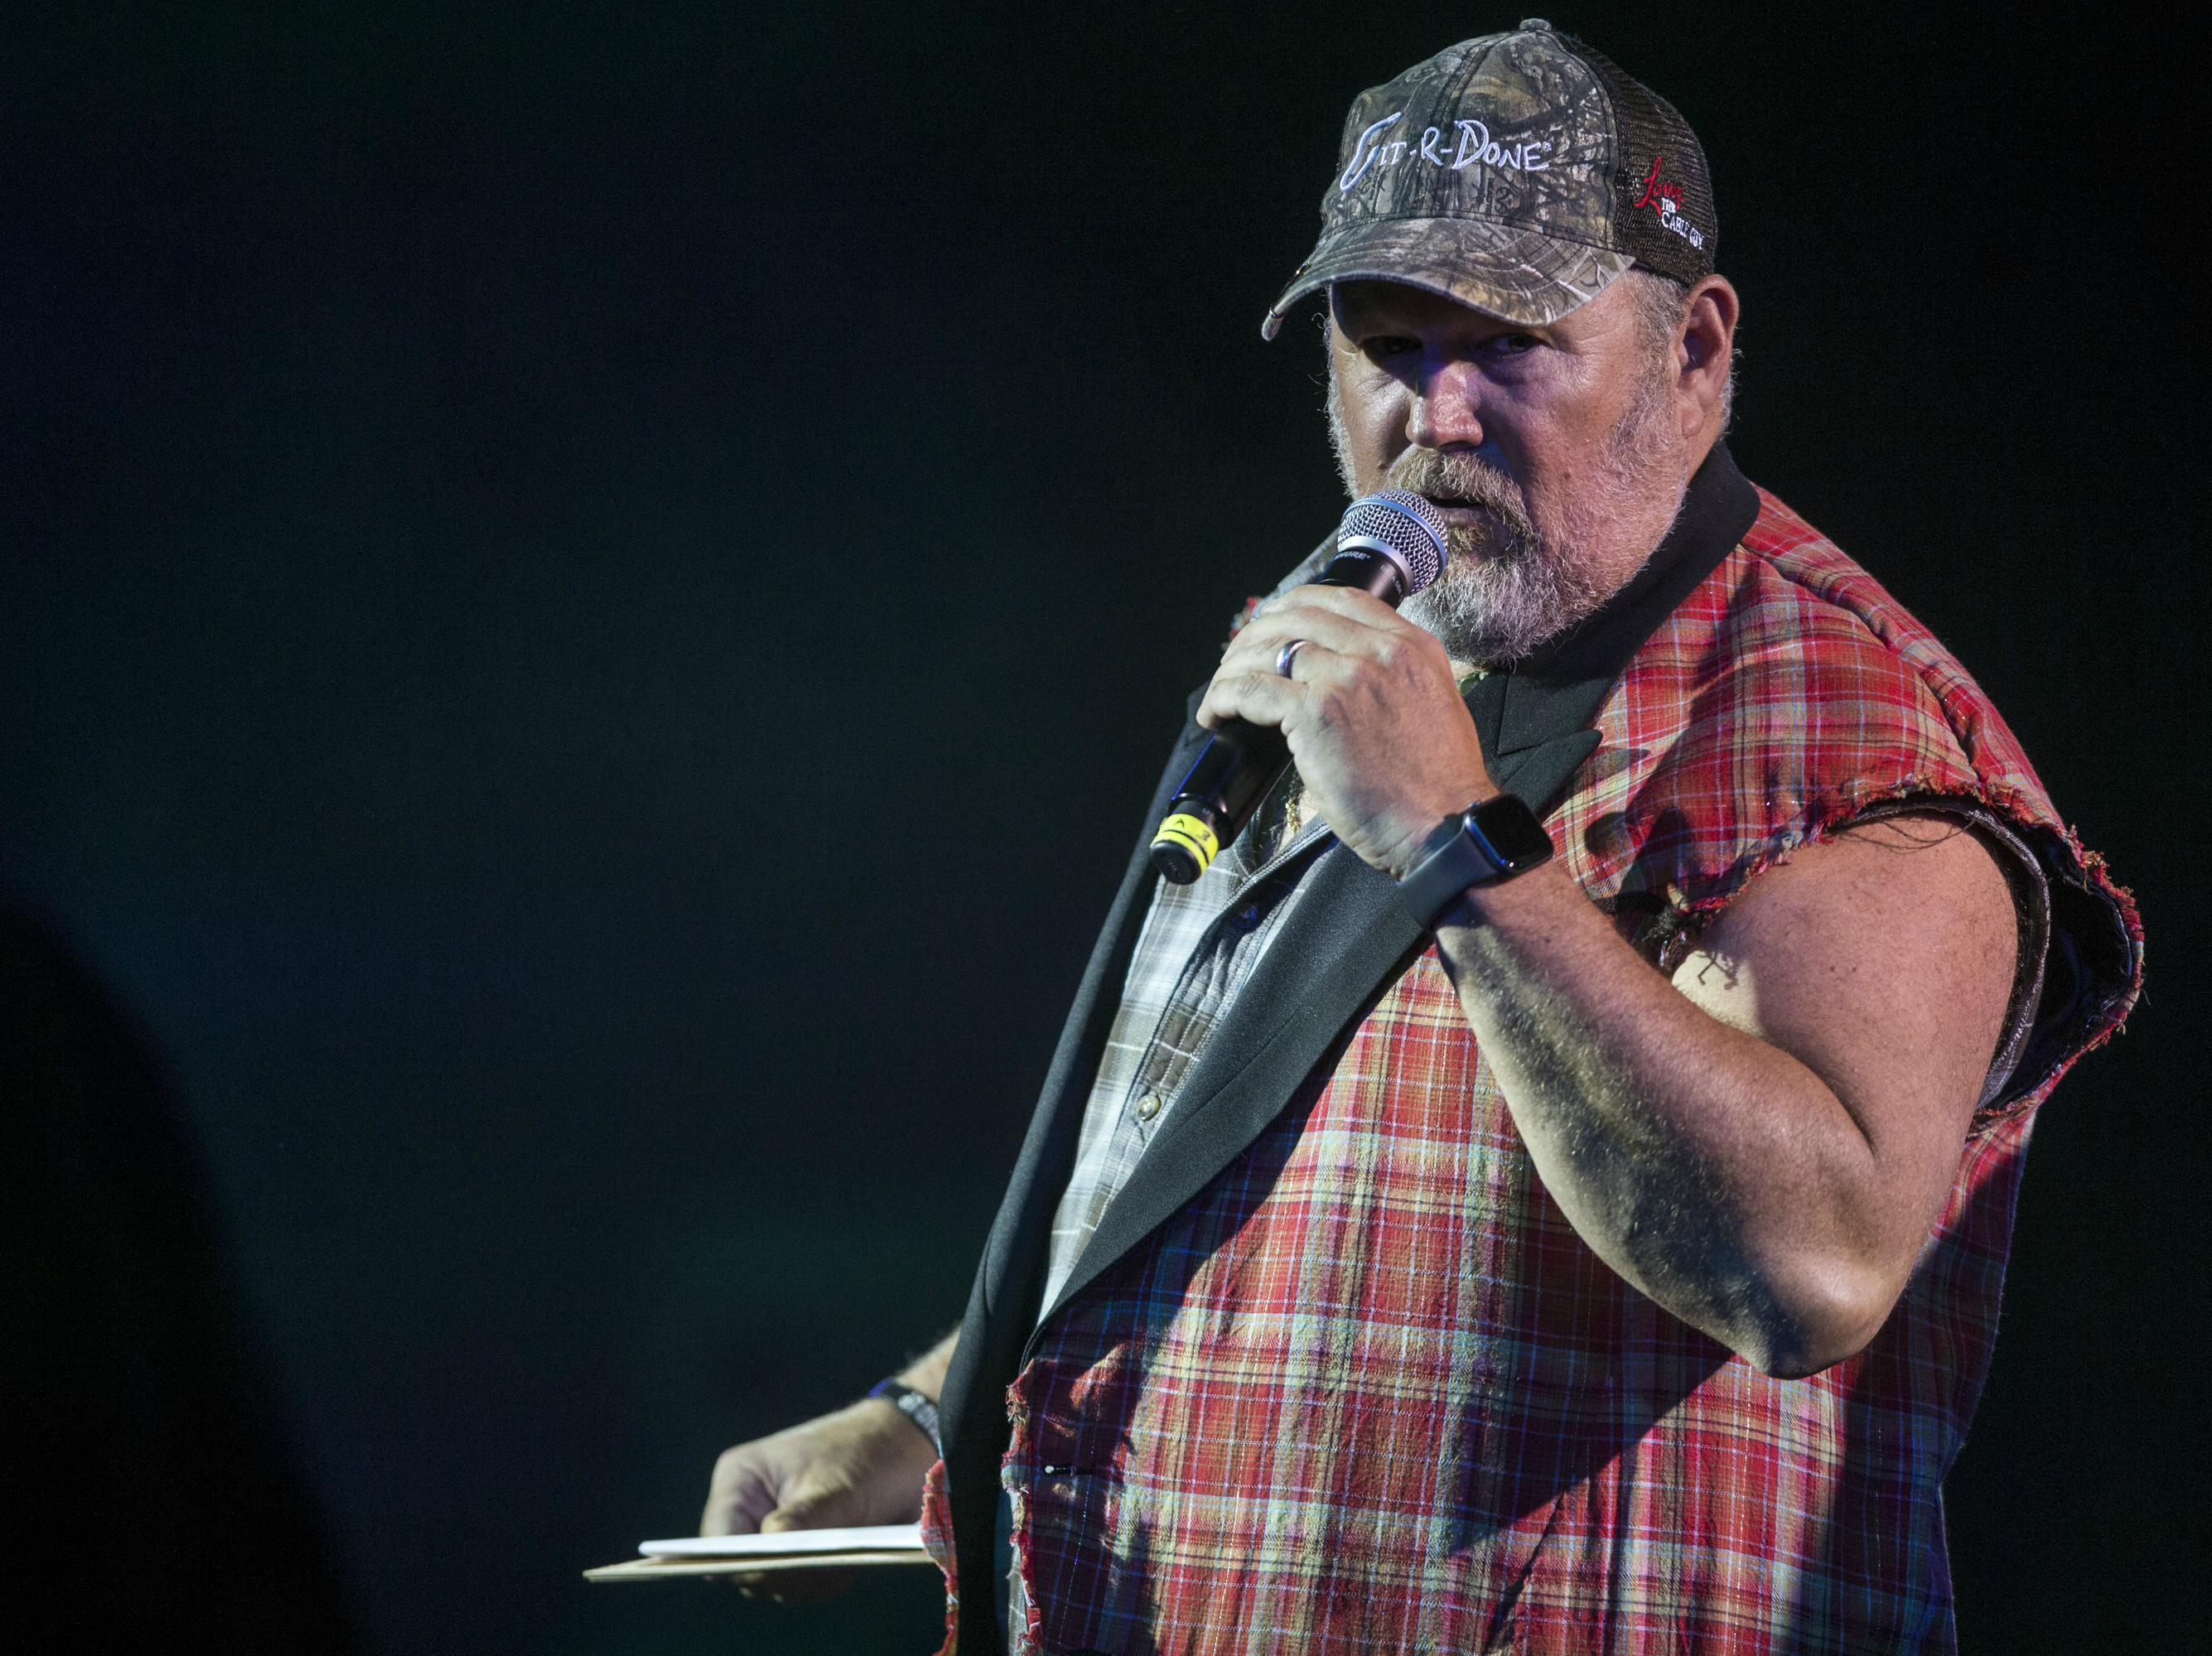 Larry the Cable Guy tells jokes during the 17th annual Alice Cooper's Christmas Pudding concert, Dec. 8, 2018, at Celebrity Theatre in Phoenix.